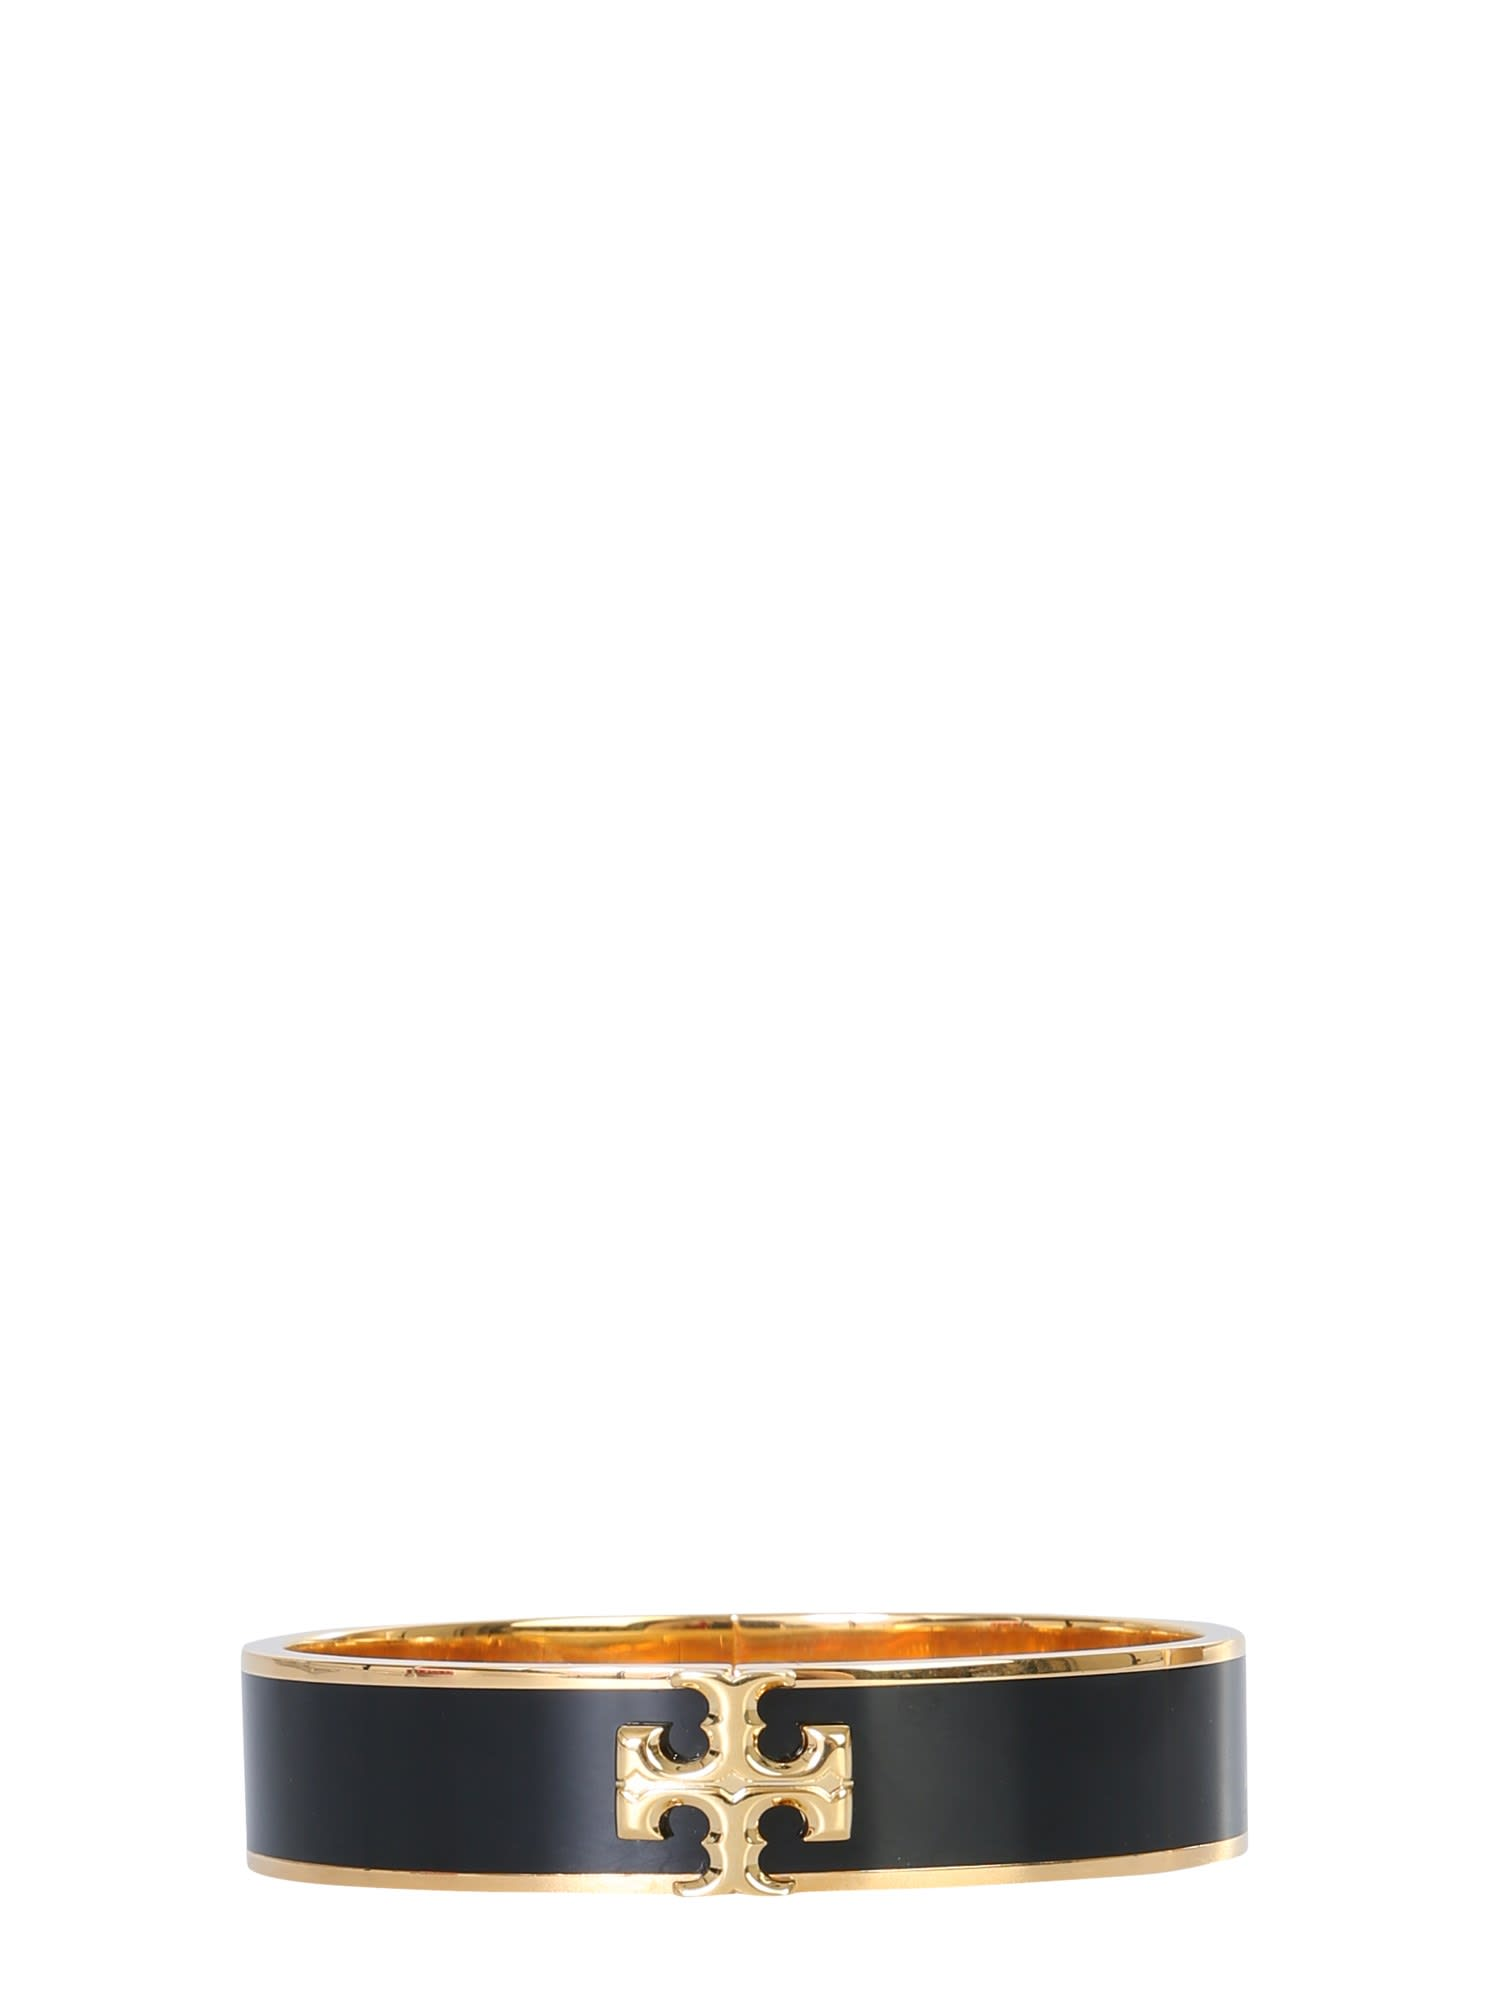 Tory Burch Bracelet With Logo